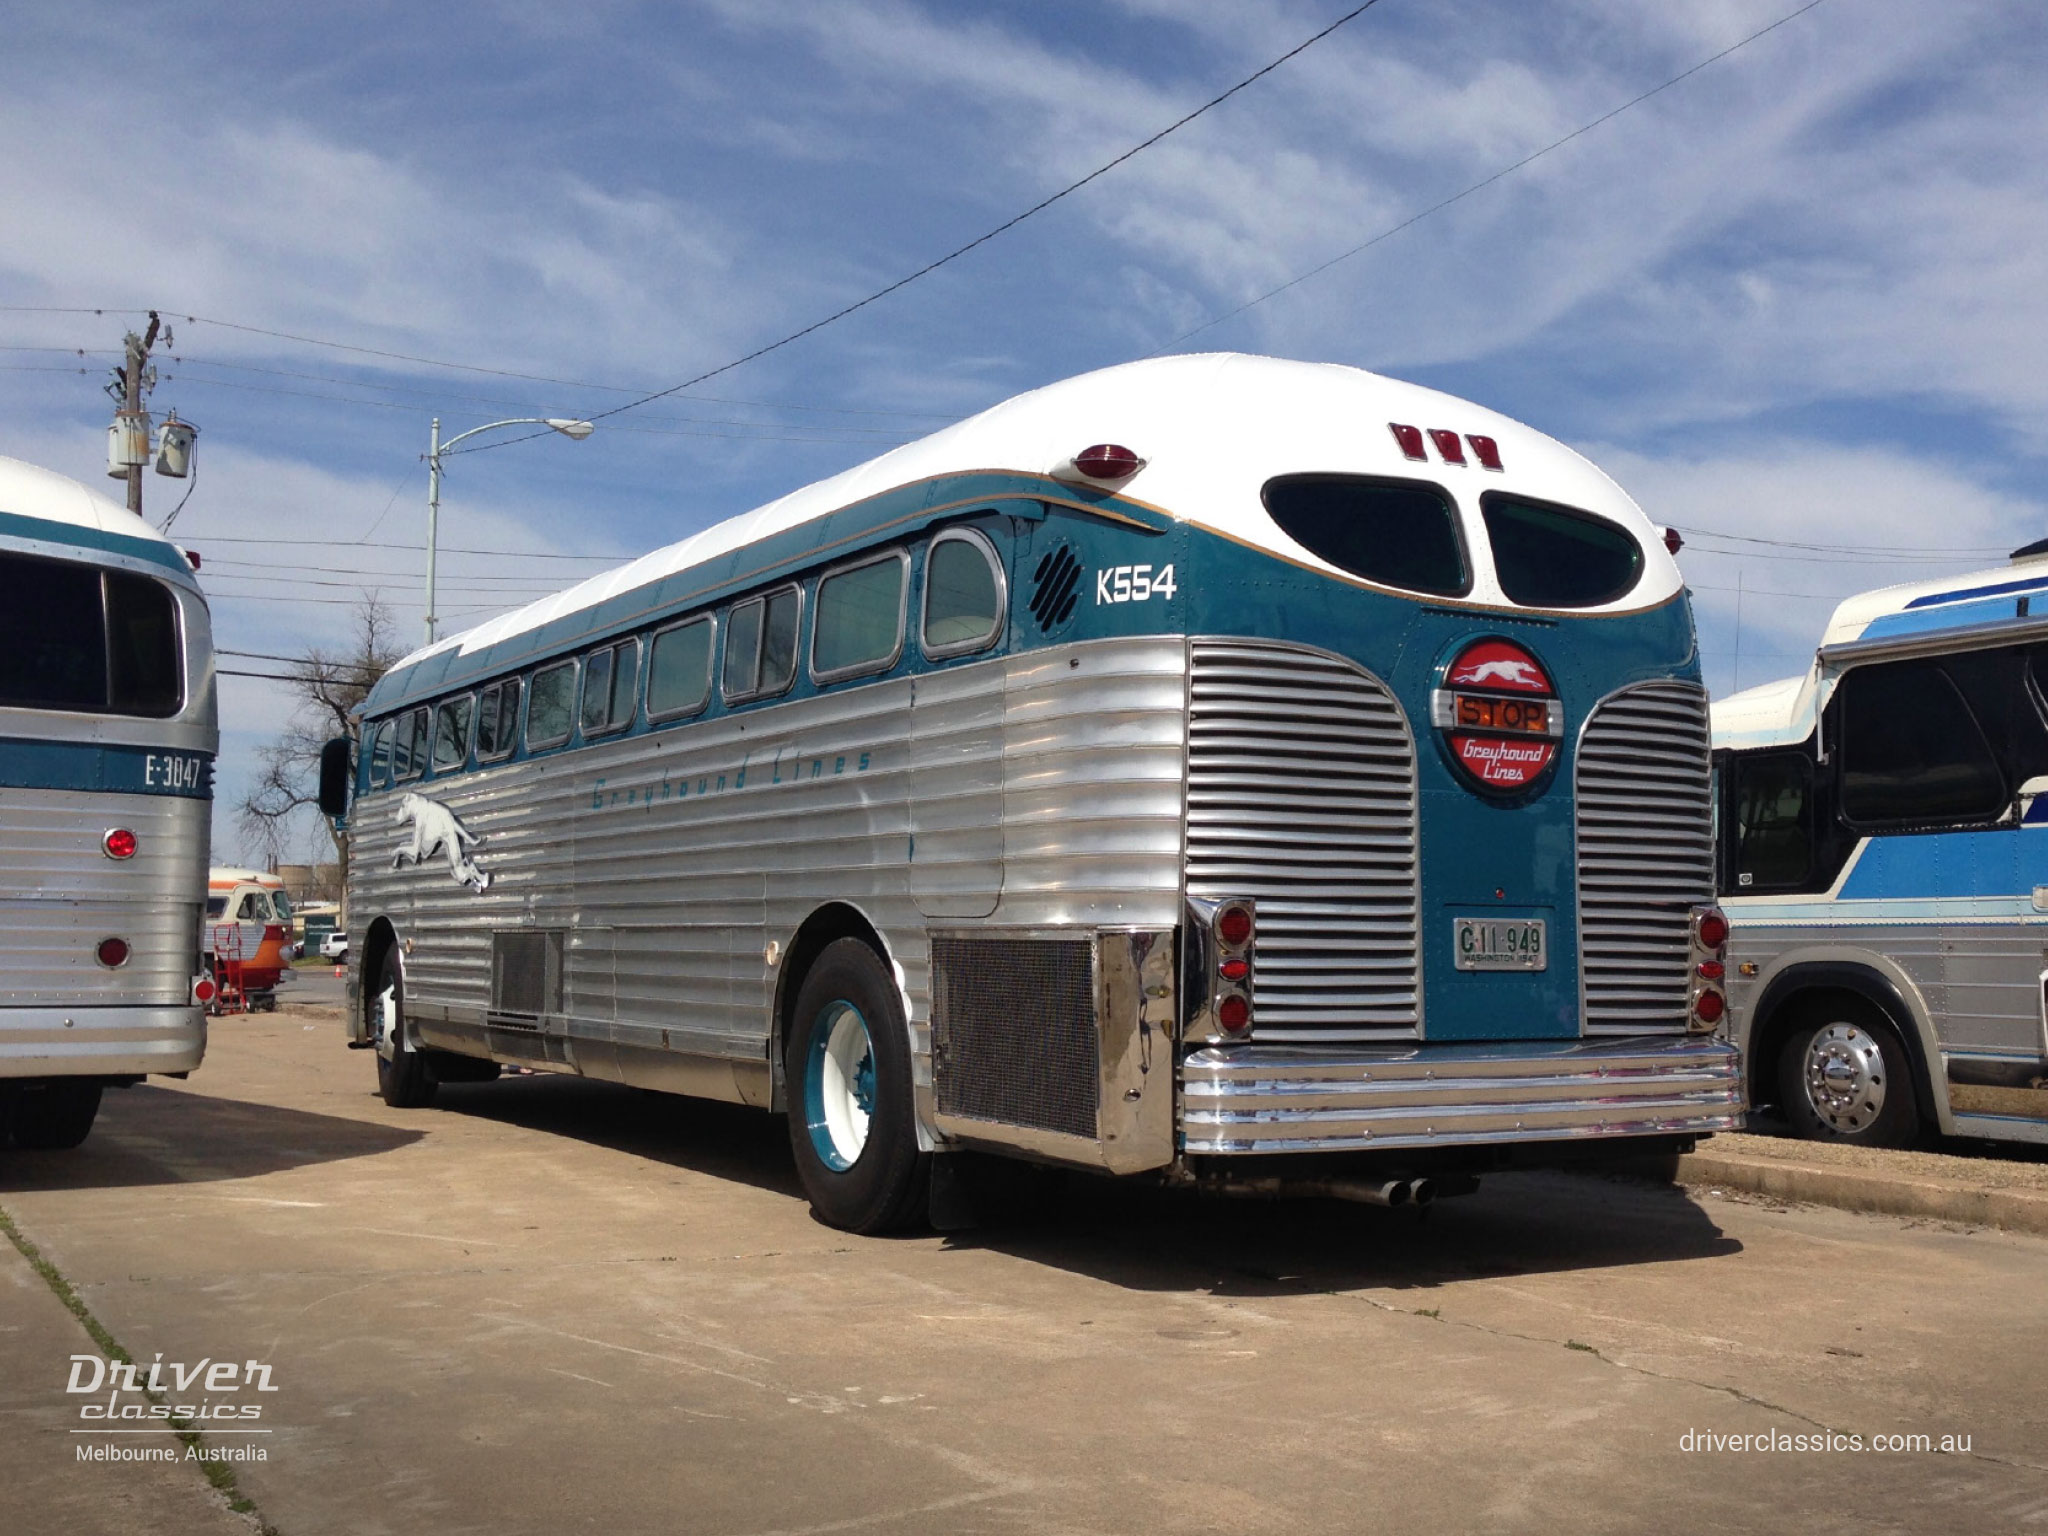 Fully restored 1947 GM PD 3751 Silversides bus back, in the USA